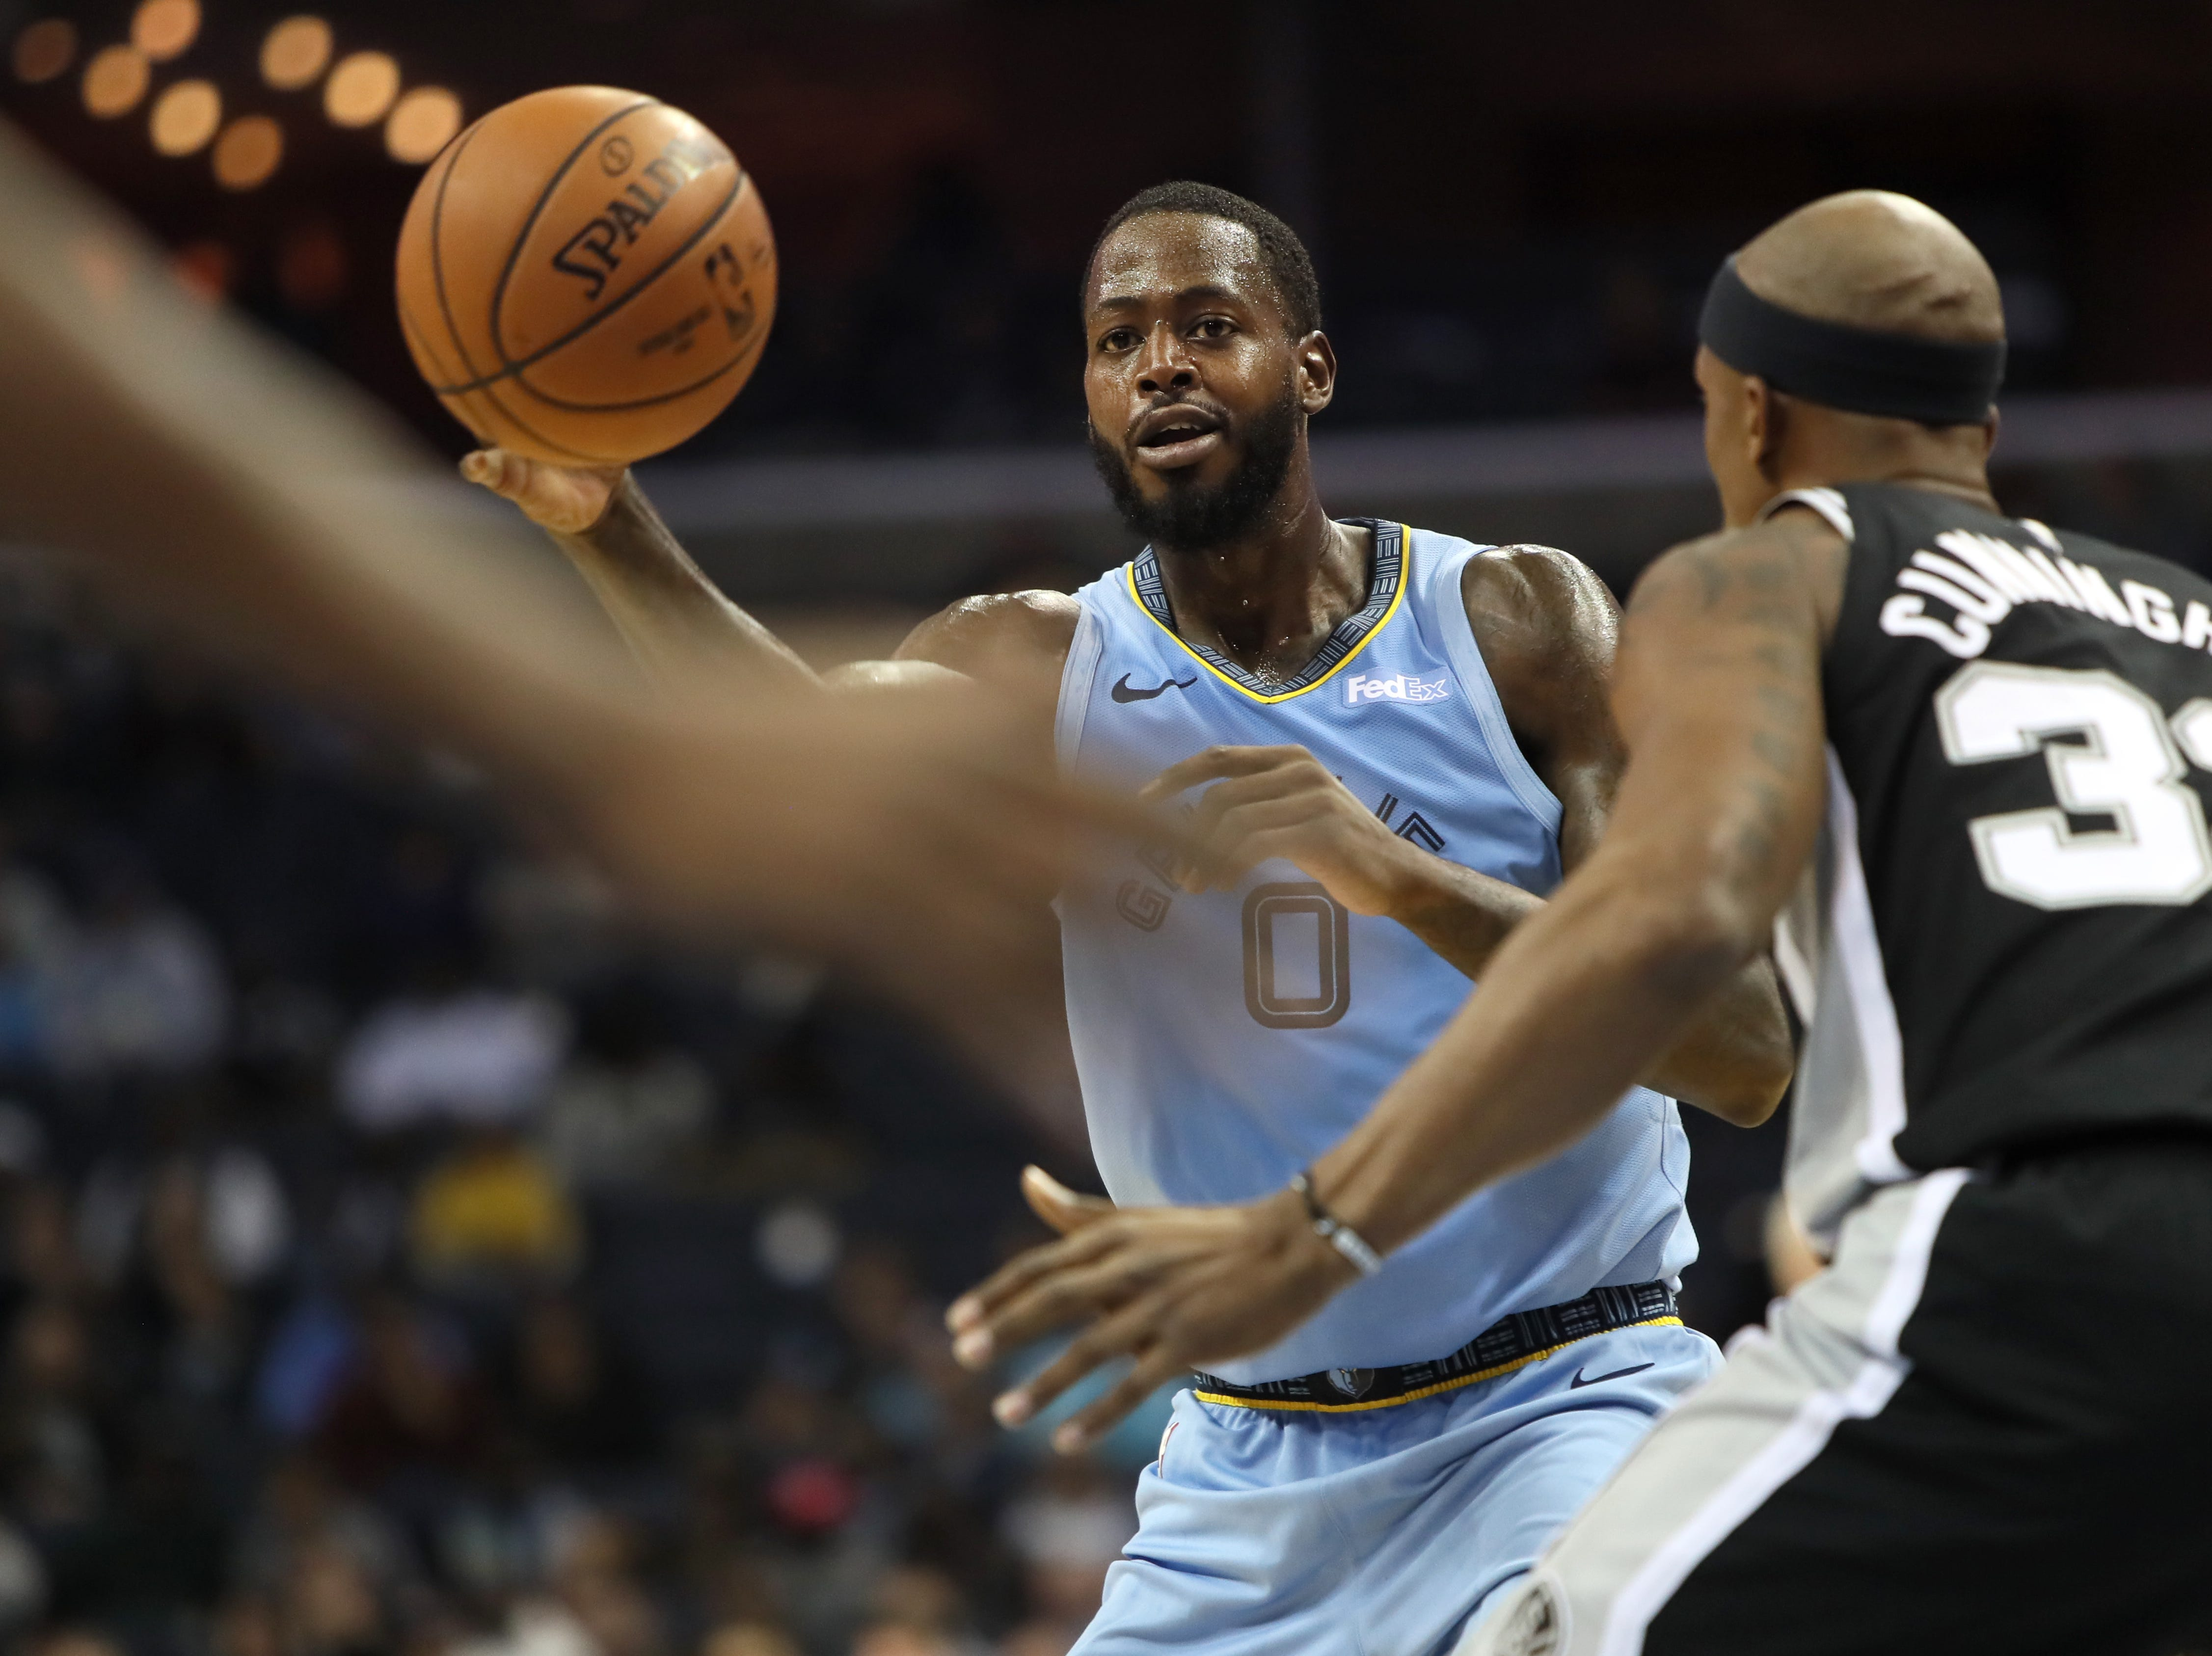 Memphis Grizzlies forward JaMychal Green passes the ball past San Antonio Spurs defender Dante Cunningham during their game at the FedExForum on Wednesday, Jan. 9, 2019.